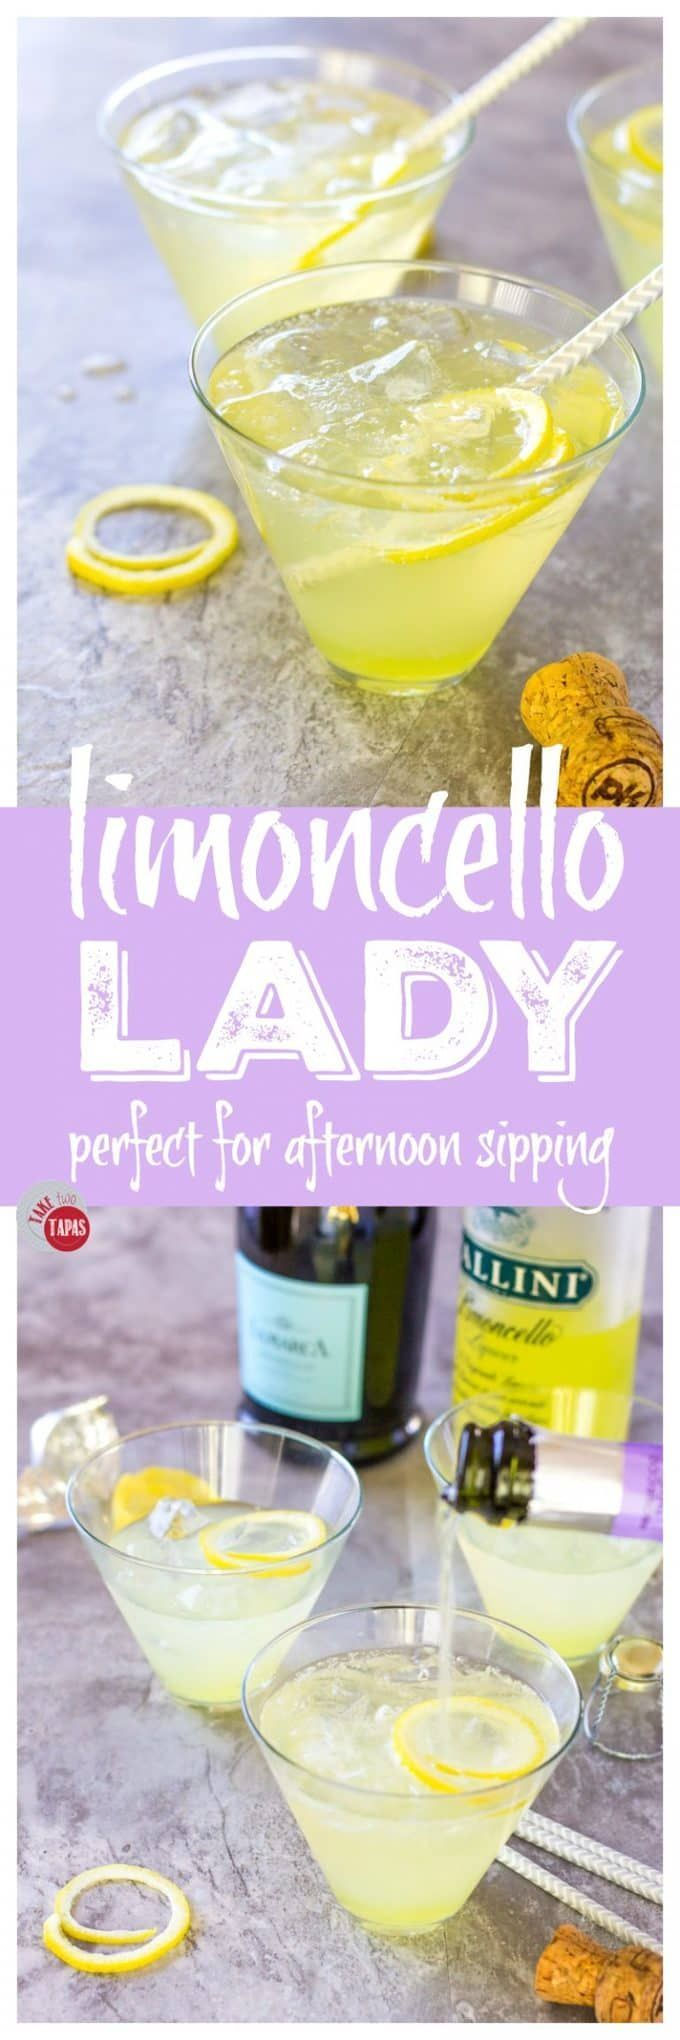 Limoncello Lady - Sparkling 3 Ingredient Prosecco Cocktail